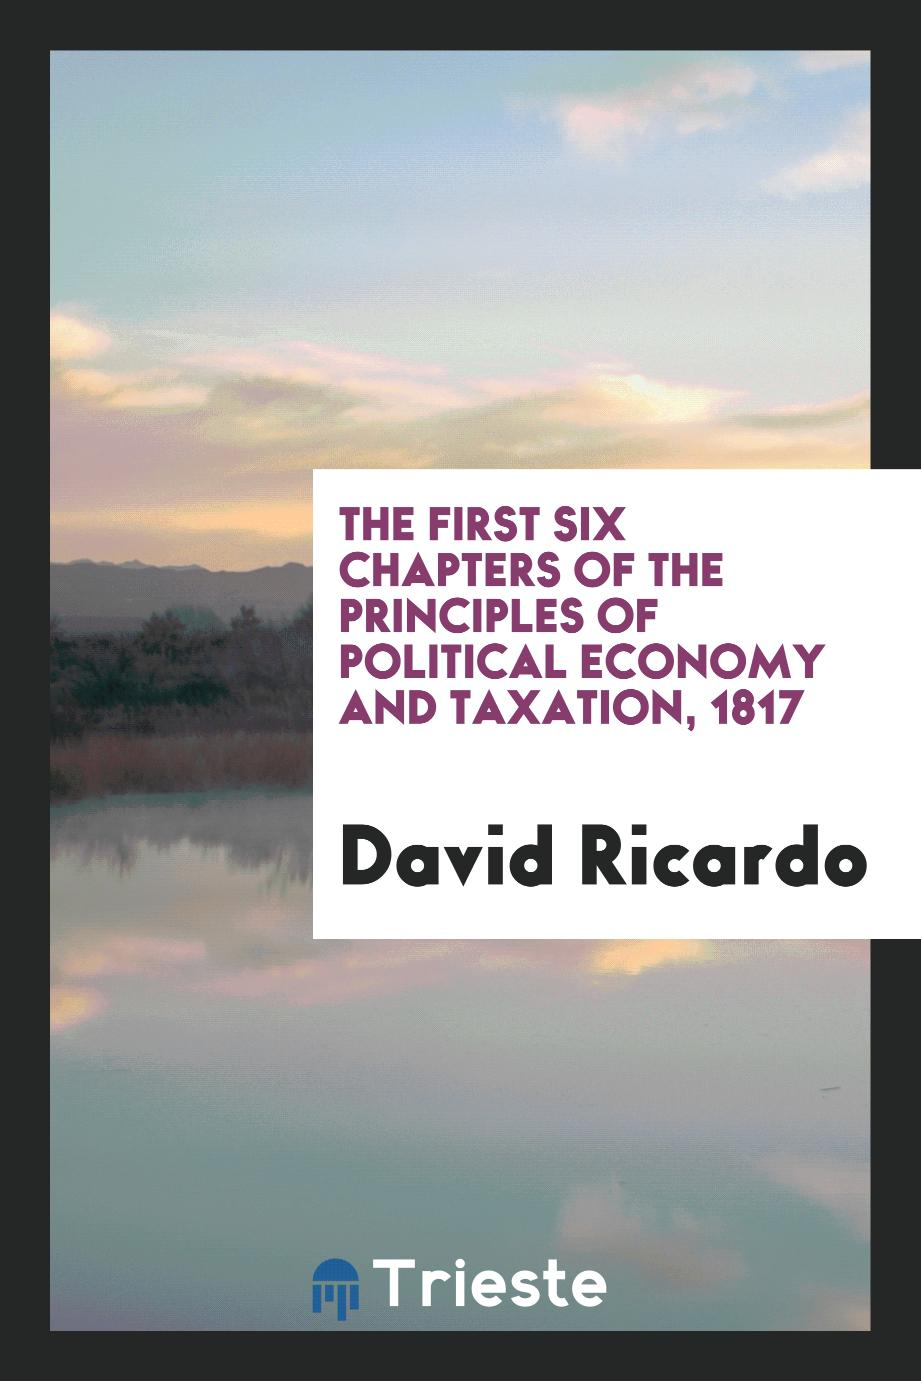 The First Six Chapters of the Principles of Political Economy and Taxation, 1817